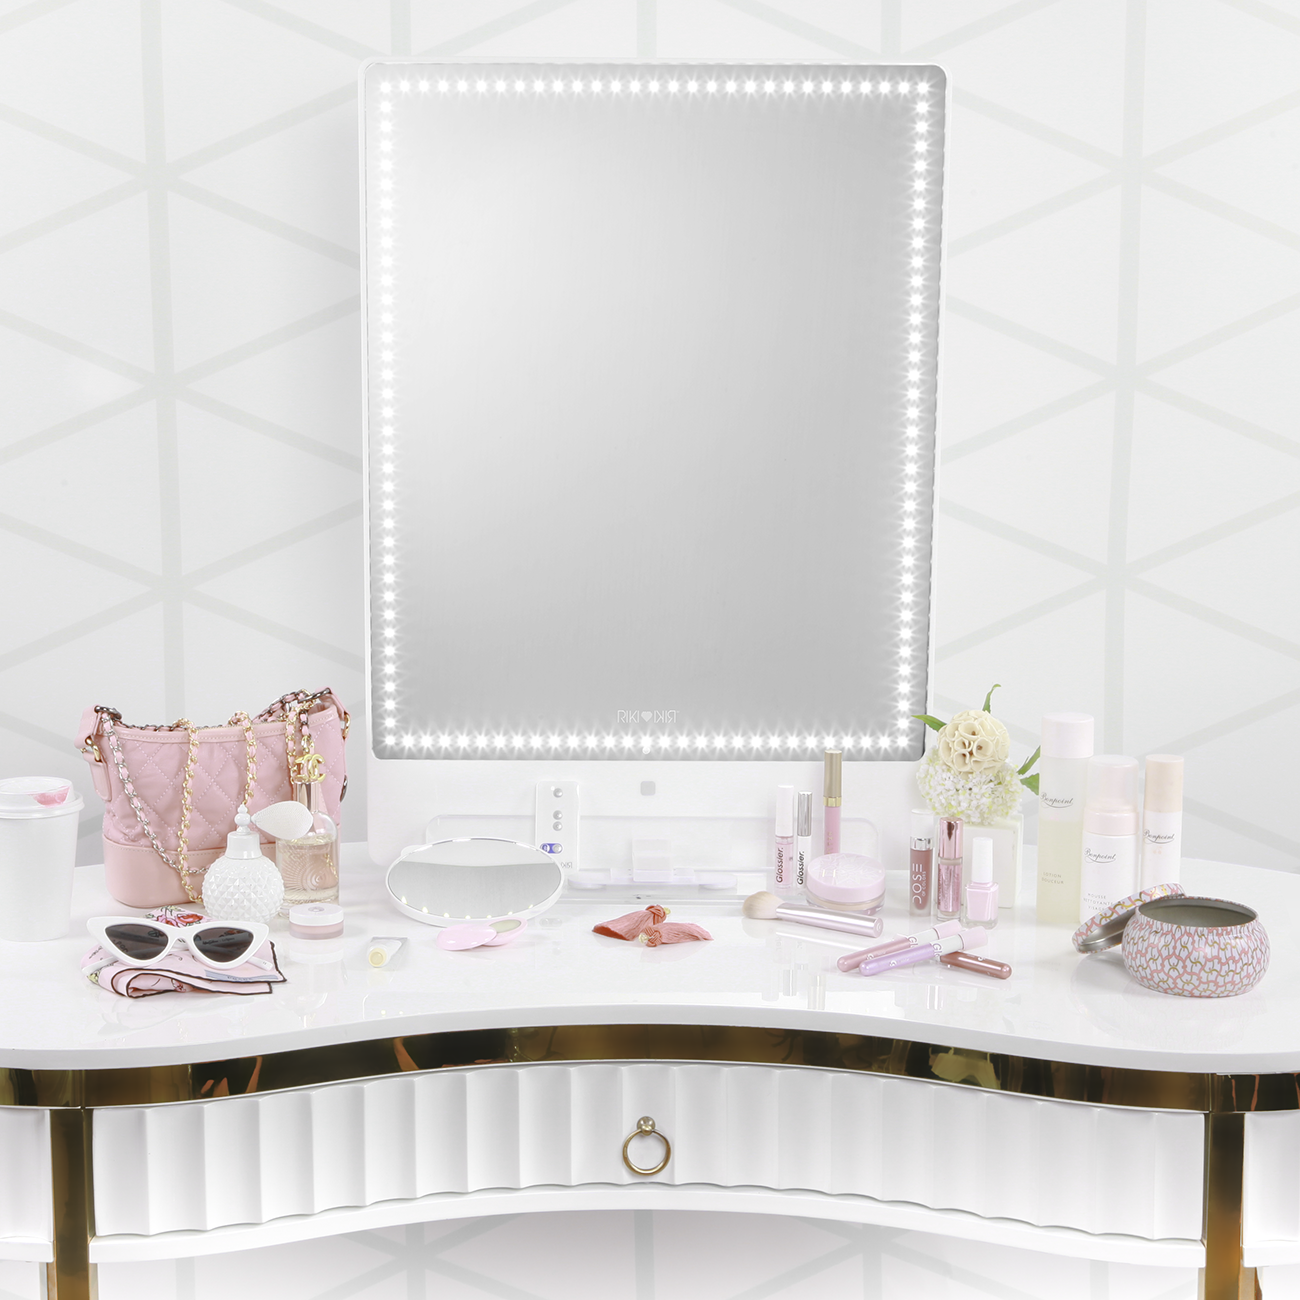 VANITY GOALS! This vanity setup with the RIKI lighted